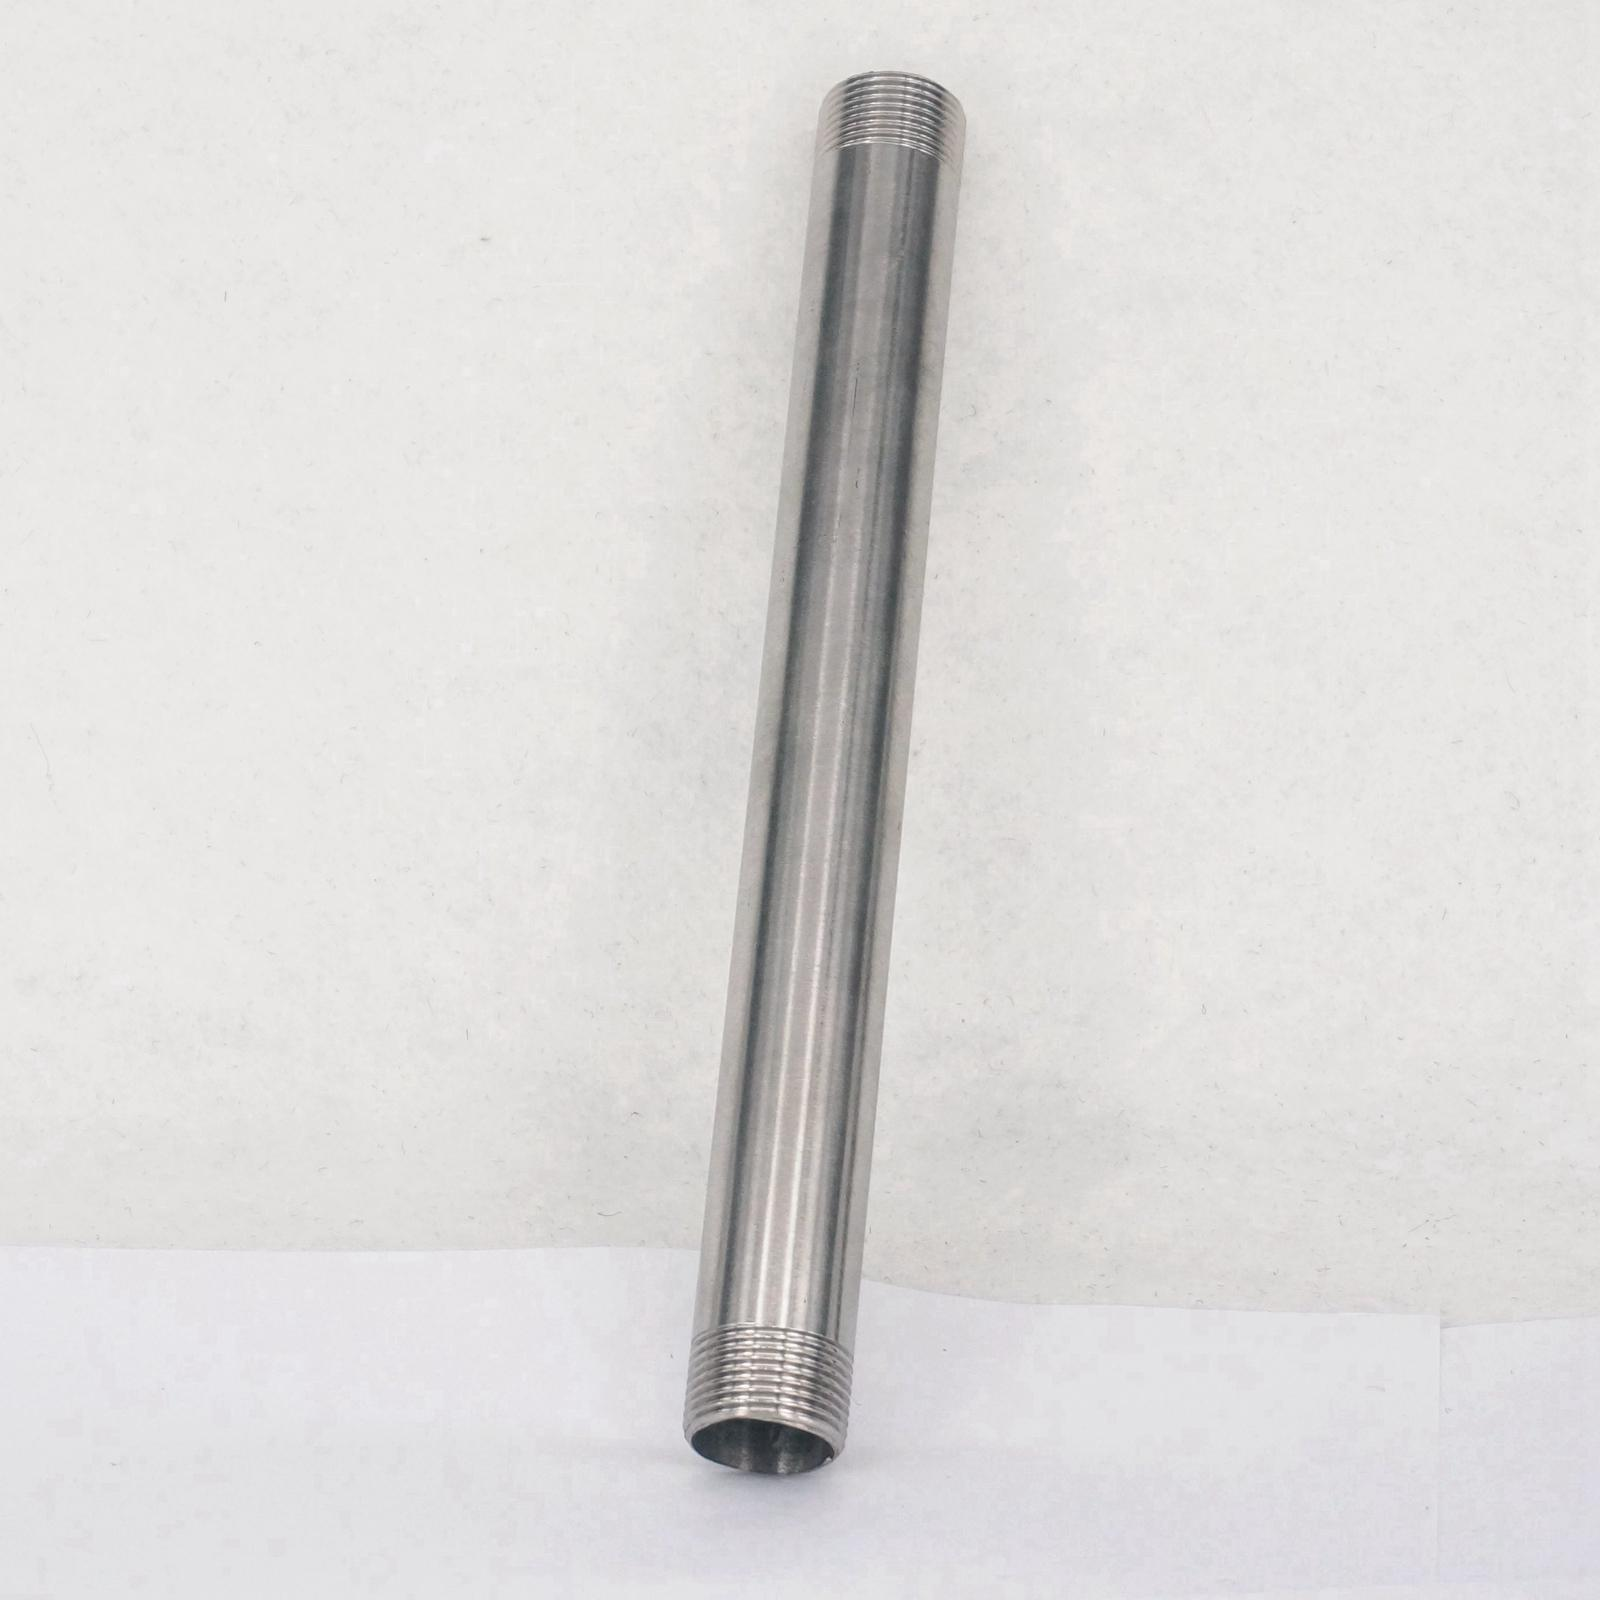 304 Stainless Steel Long Straight Pipe Fitting Connector Adapter 3/4